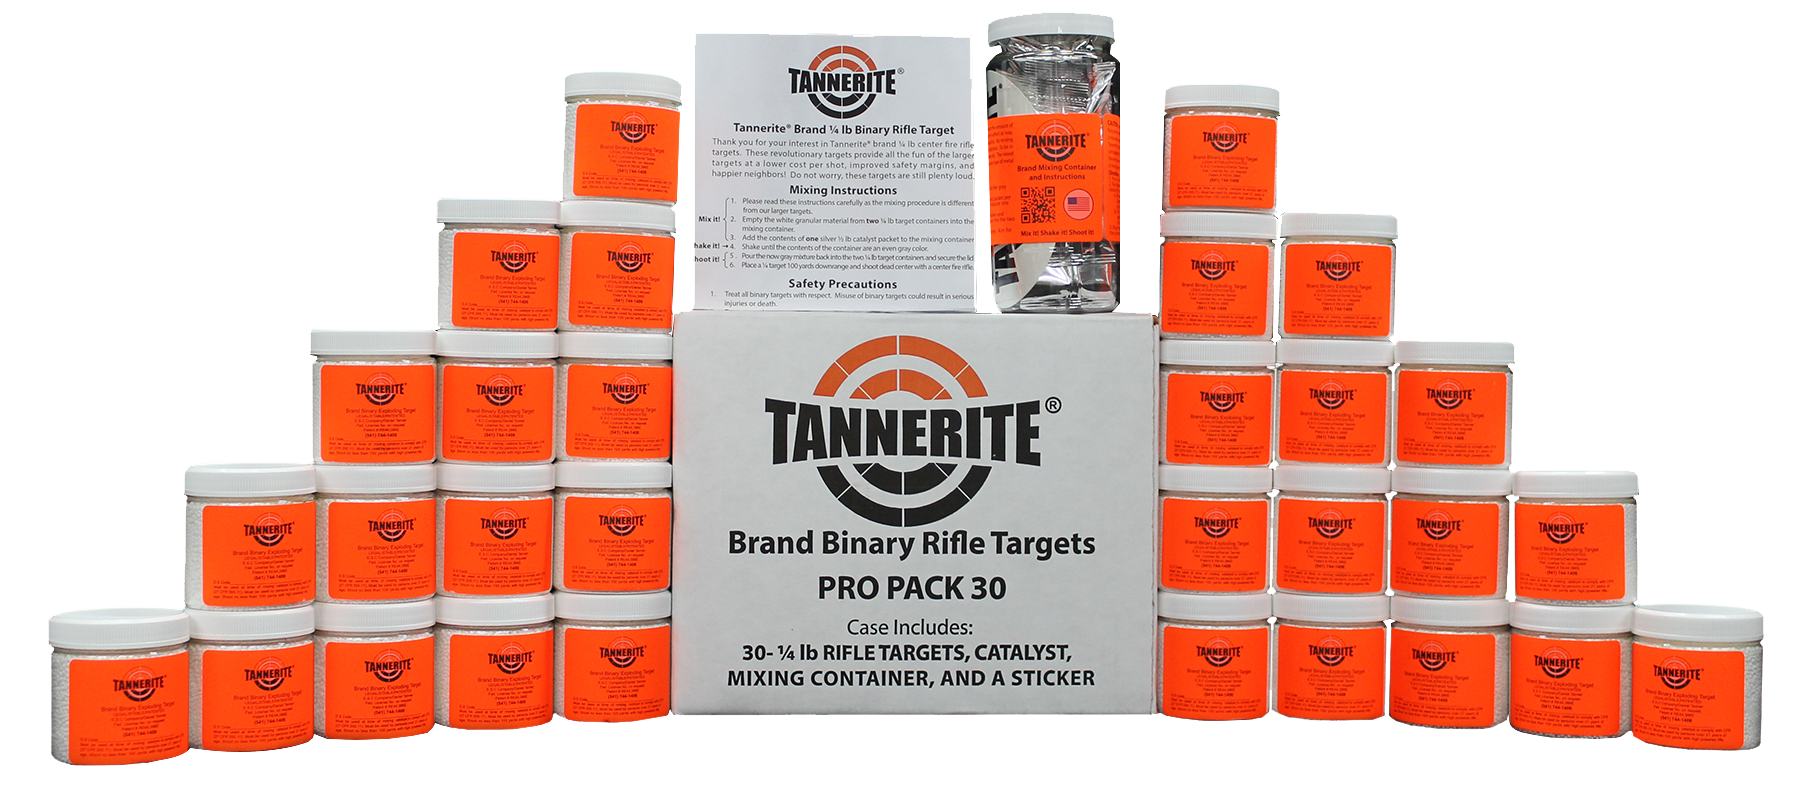 Tannerite PP30 Exploding Target 1/4 lbs 30 Count Pro Pack